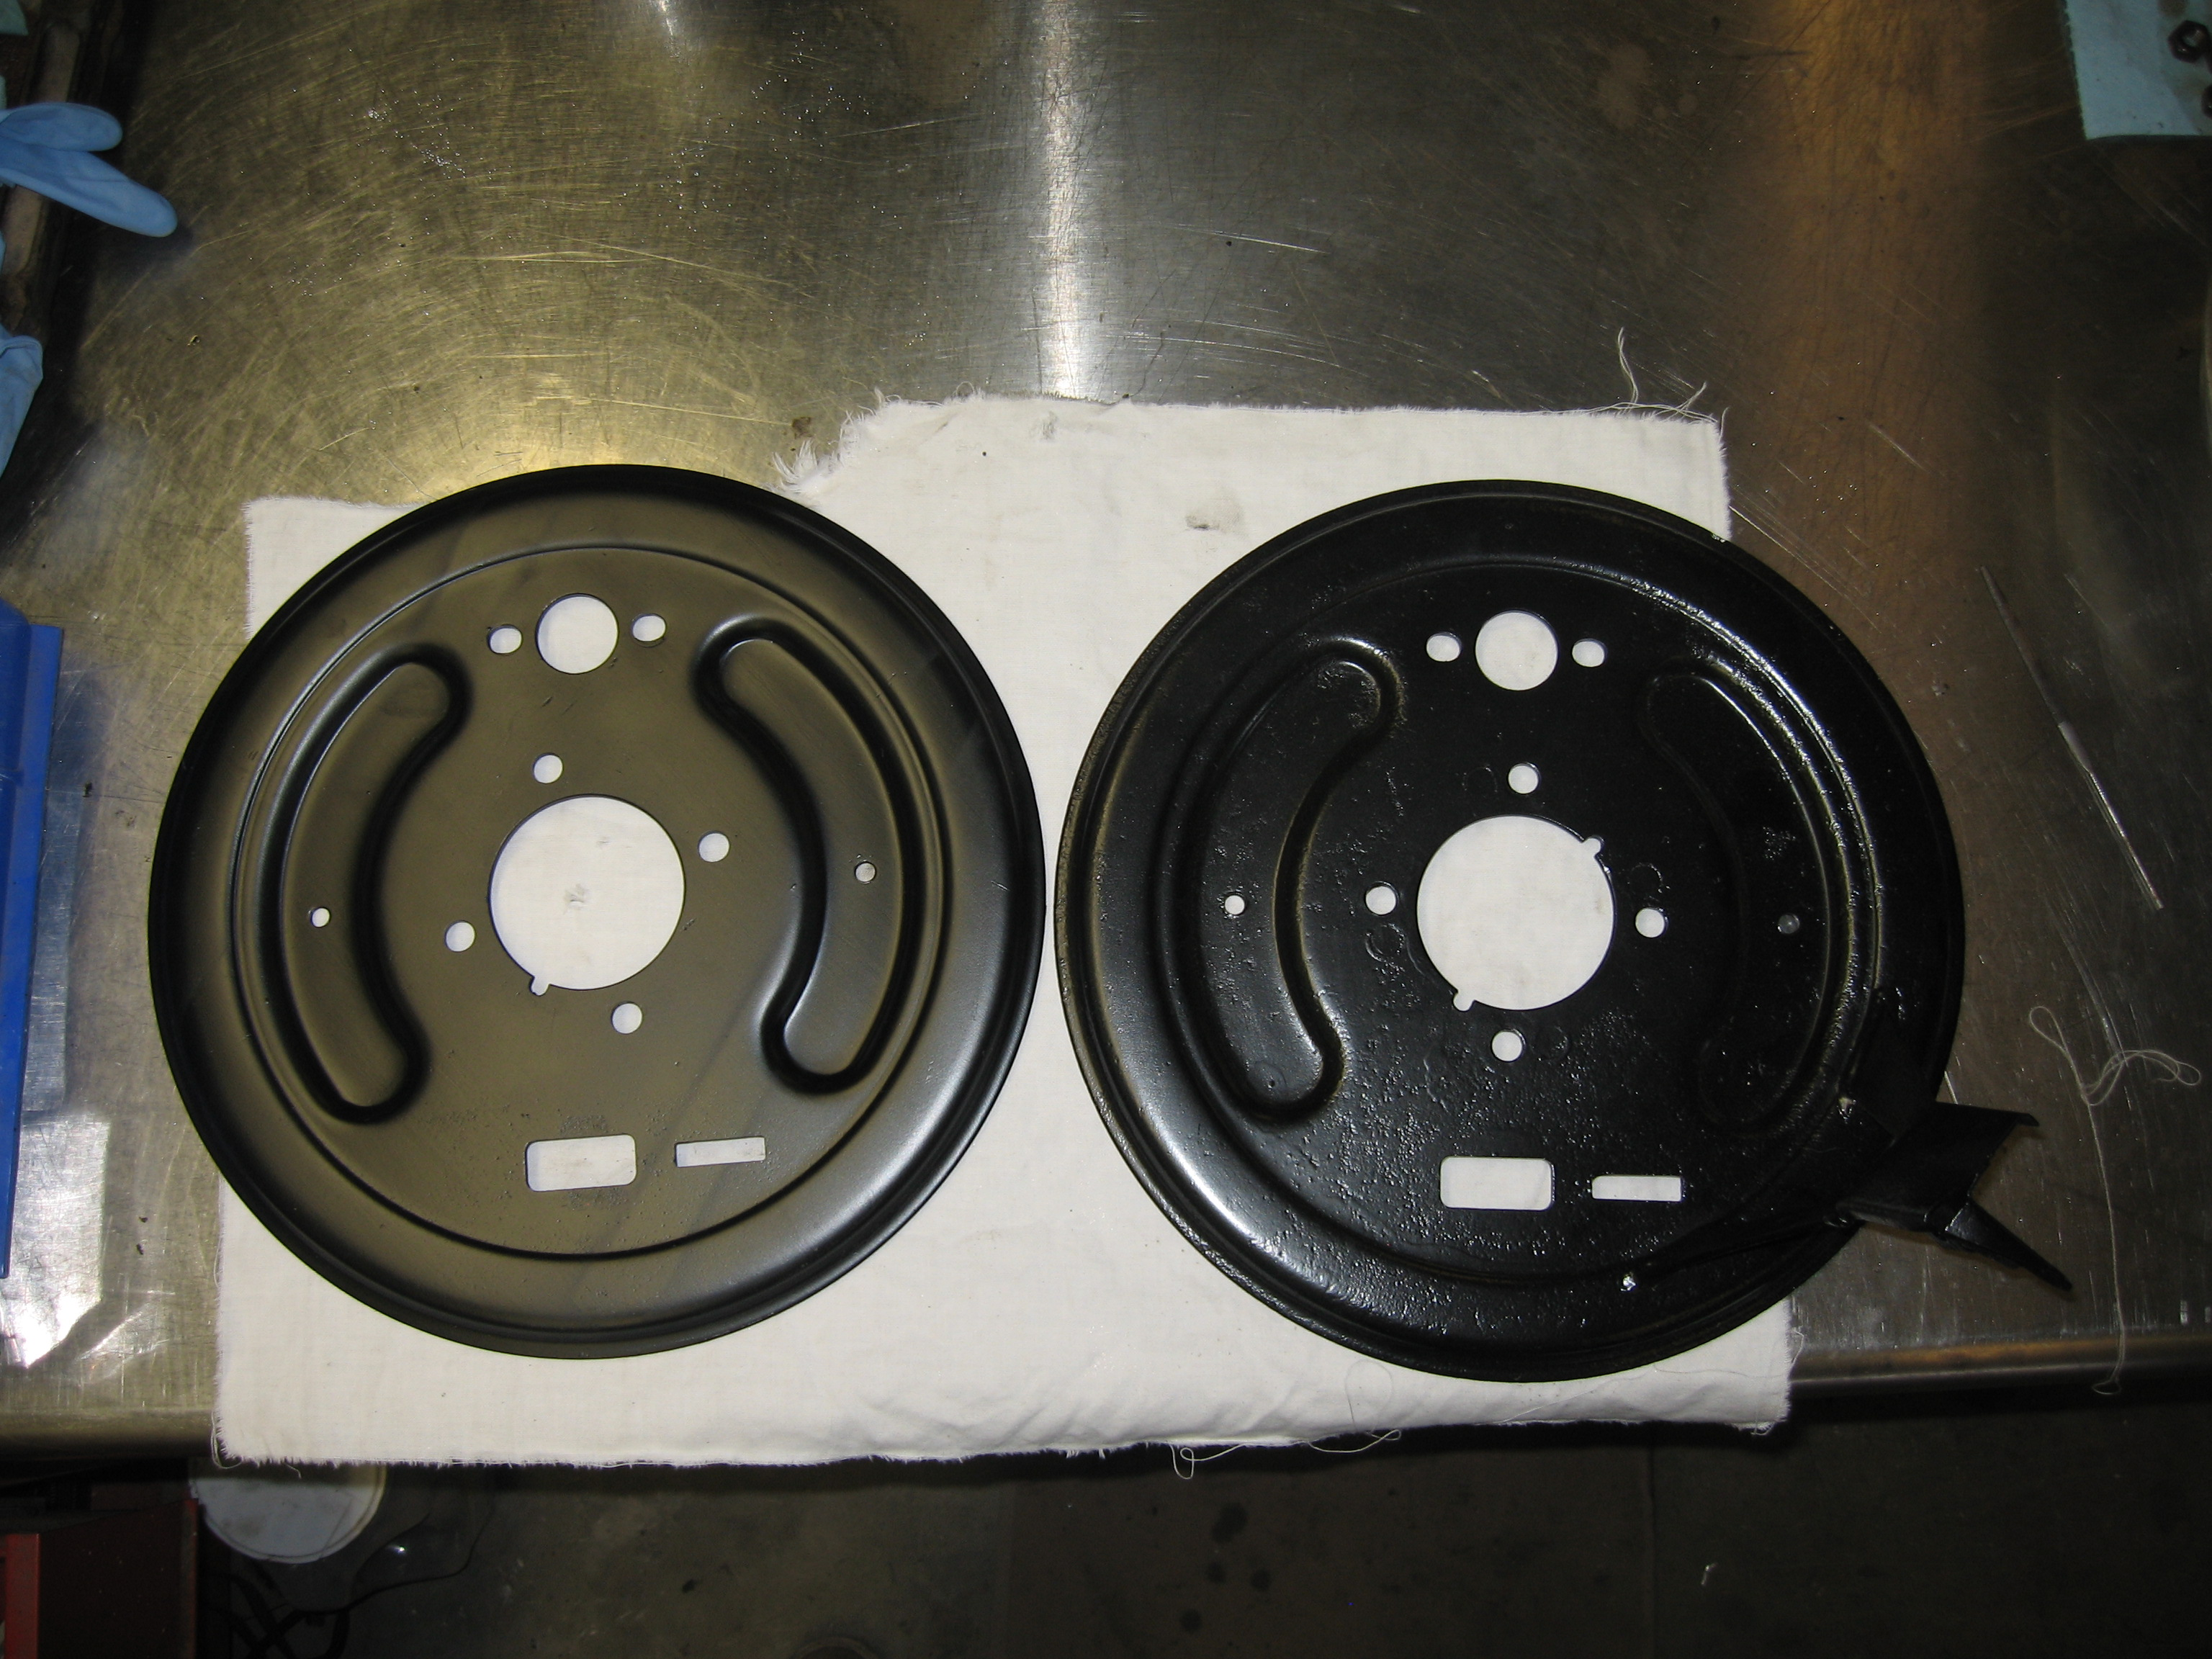 The plate on the left is a standard Giulietta part and the plate on the  right is the modified Veloce part.